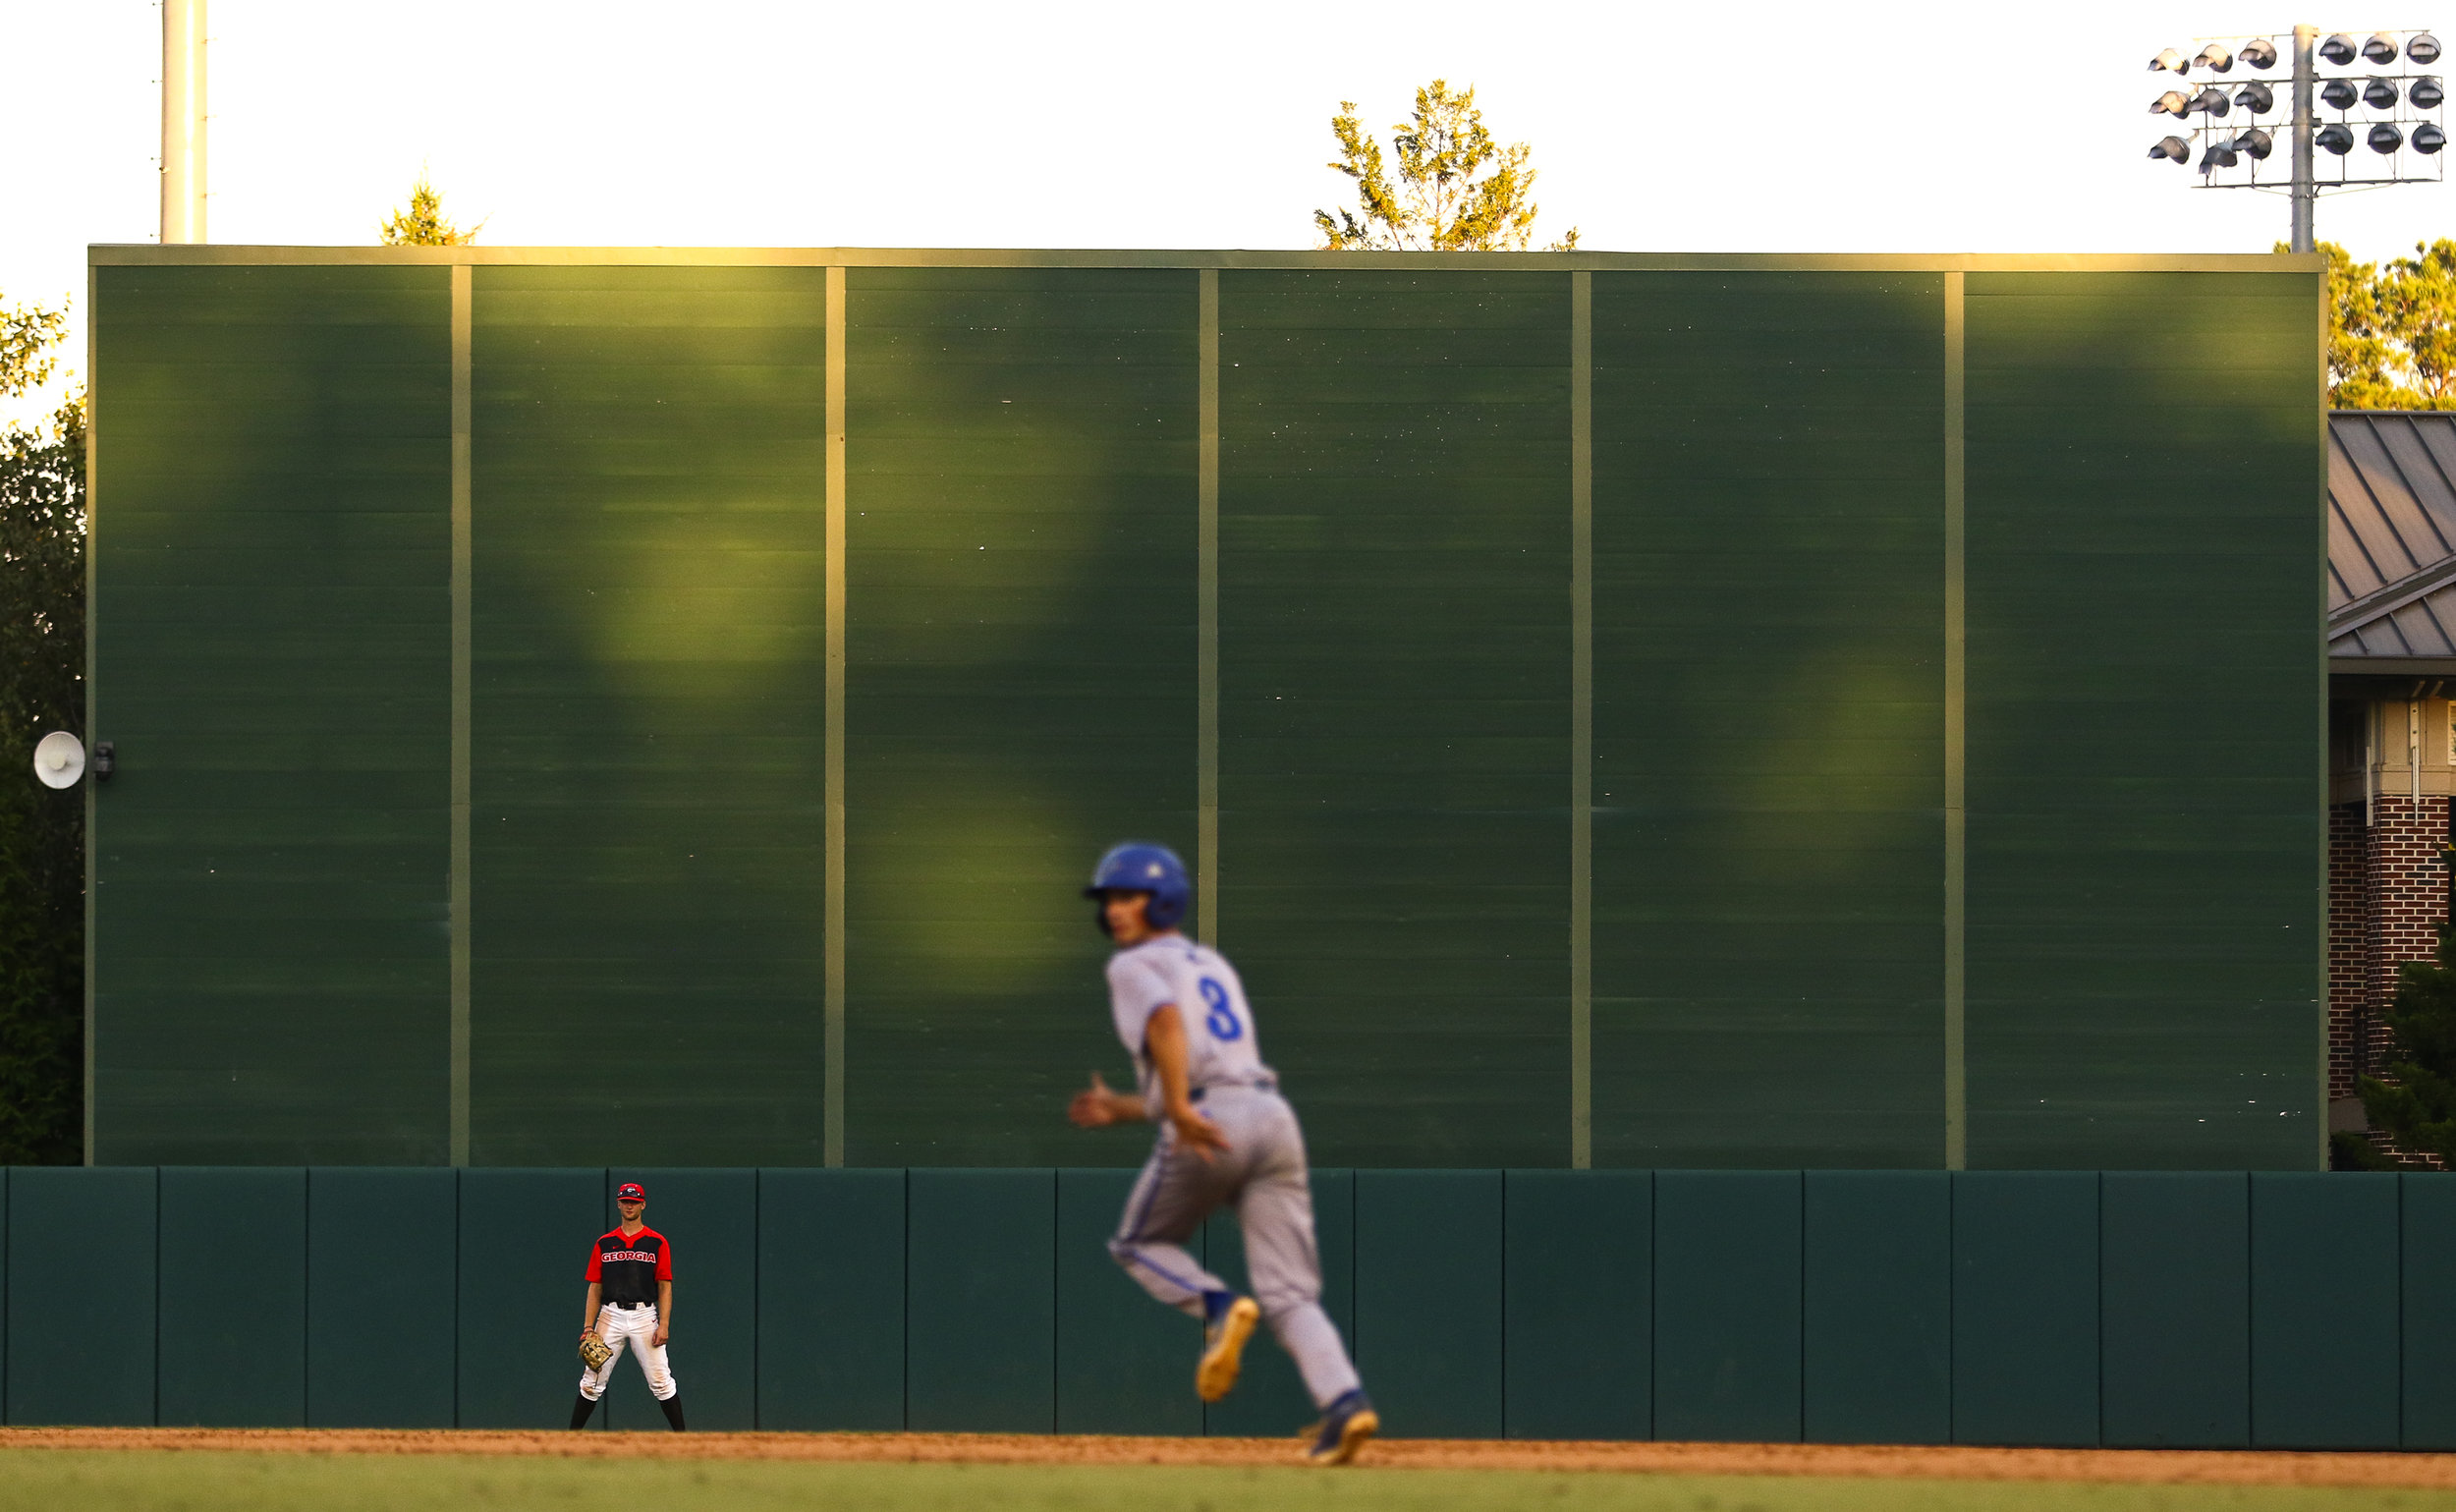 Gold light flickers on the Foley Field batter's eye screen as a UNC Asheville runner looks to take second during a baseball exhibition game between the University of Georgia and the University of North Carolina Asheville at Foley Field on Sunday, October, 14, 2018. (Photo by Kristin M. Bradshaw)